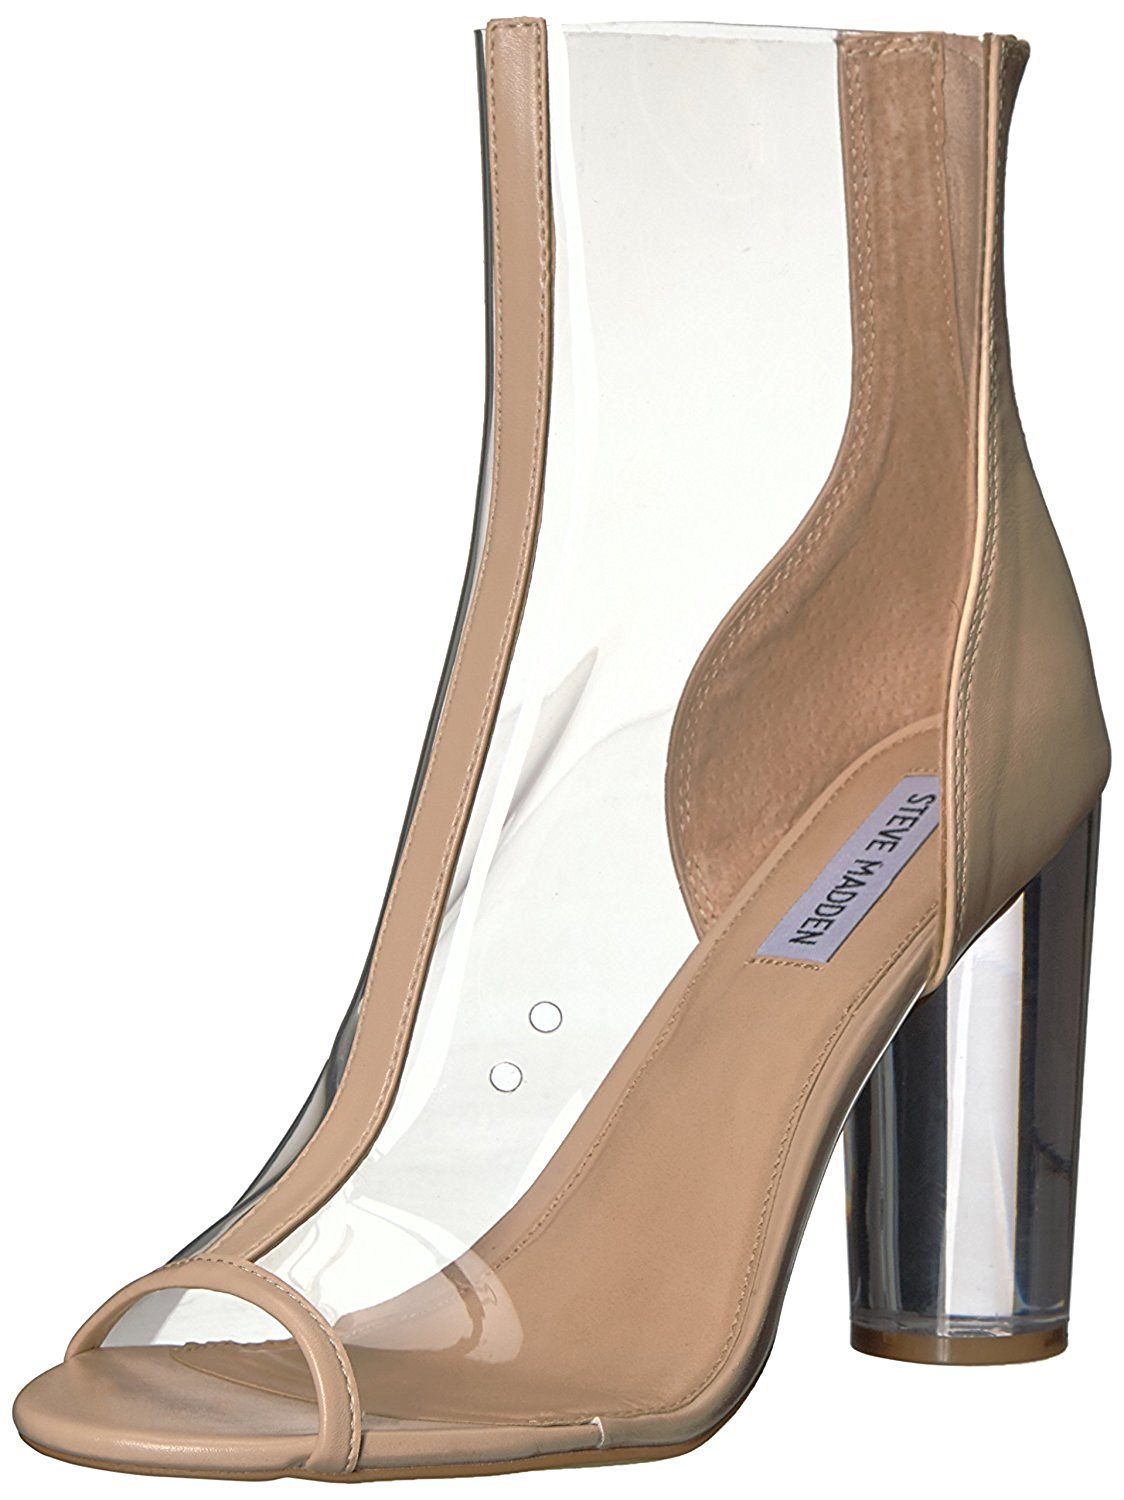 0fa3147626c Get Quotations · Steve Madden Portal Peep-Toe Synthetic Nude Heels Size 5 m